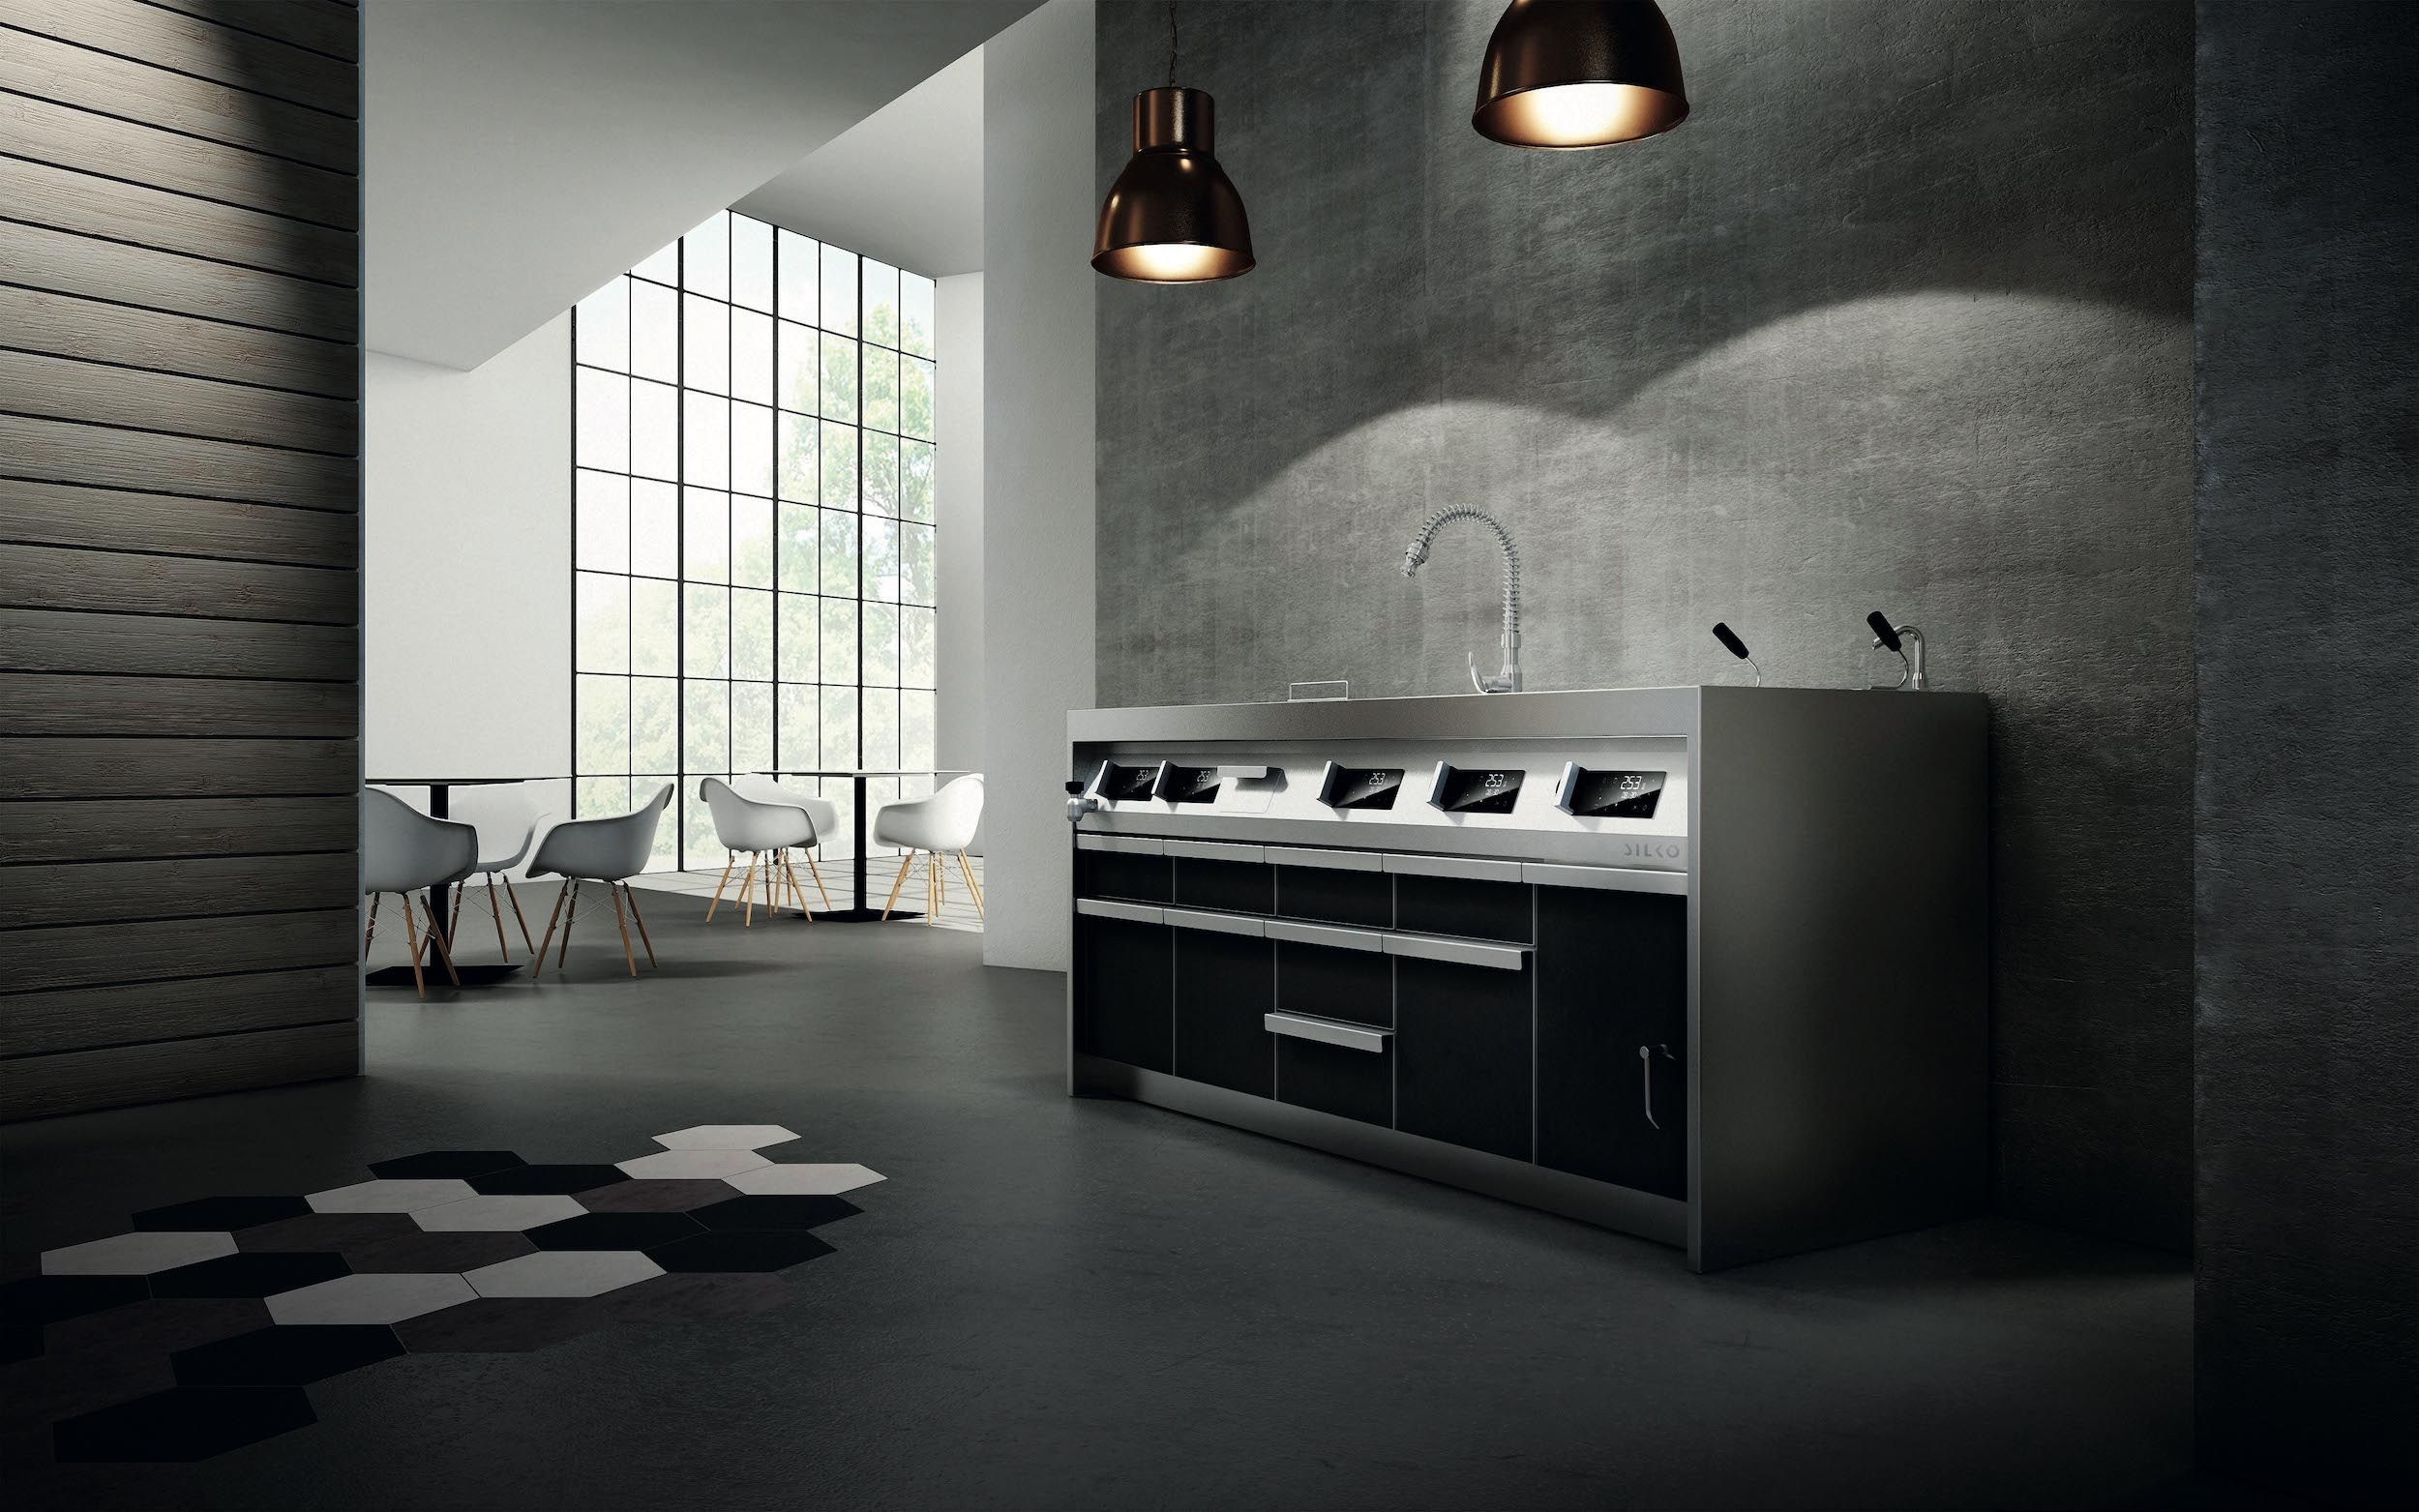 Evolution: a highly technological and modern #cooking system unfolds within the #contemporary and elegant elements of #furniture. #professionalkitchen #interiordesign #kitchendesign #design